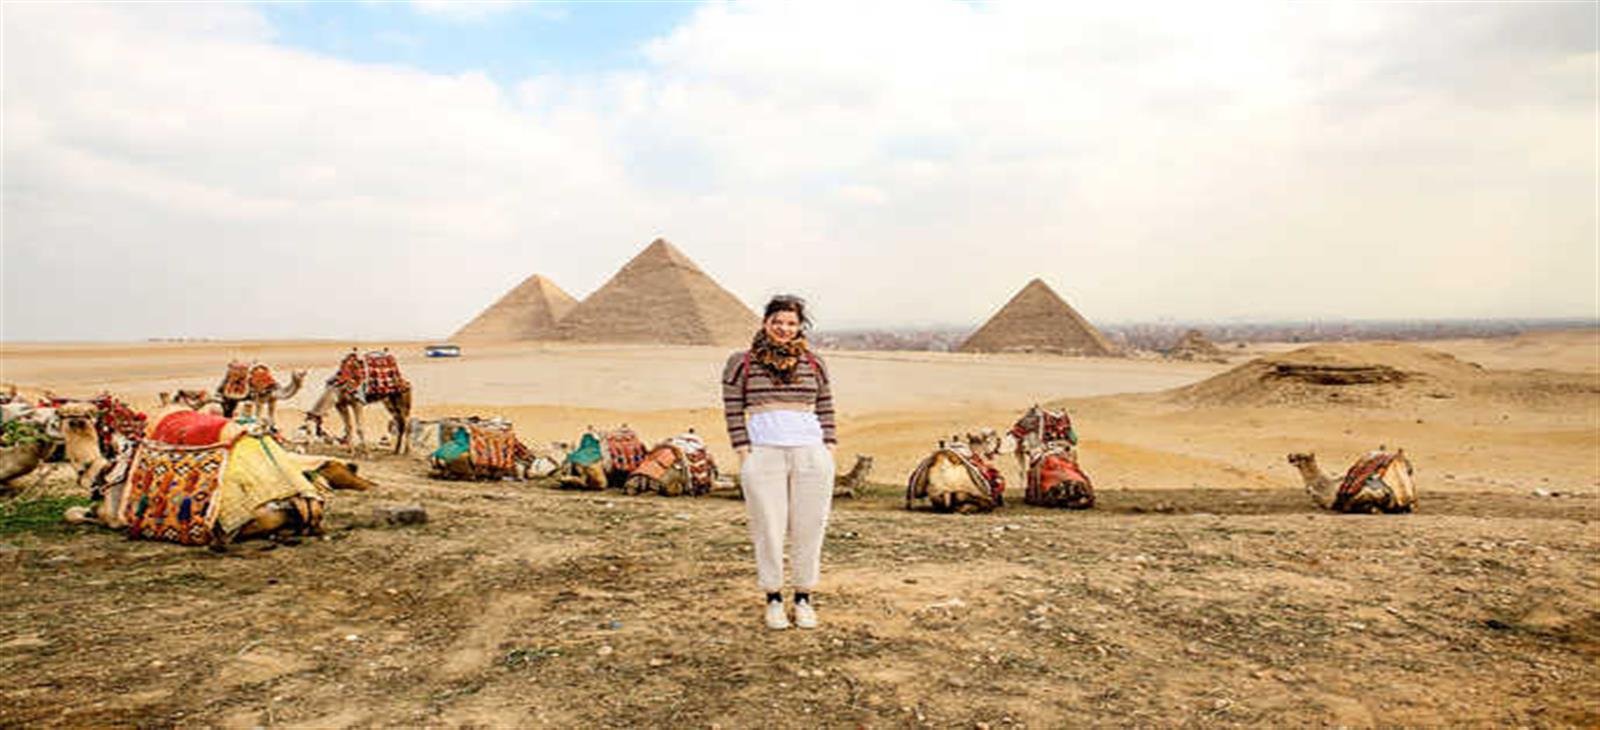 tour to dahshur